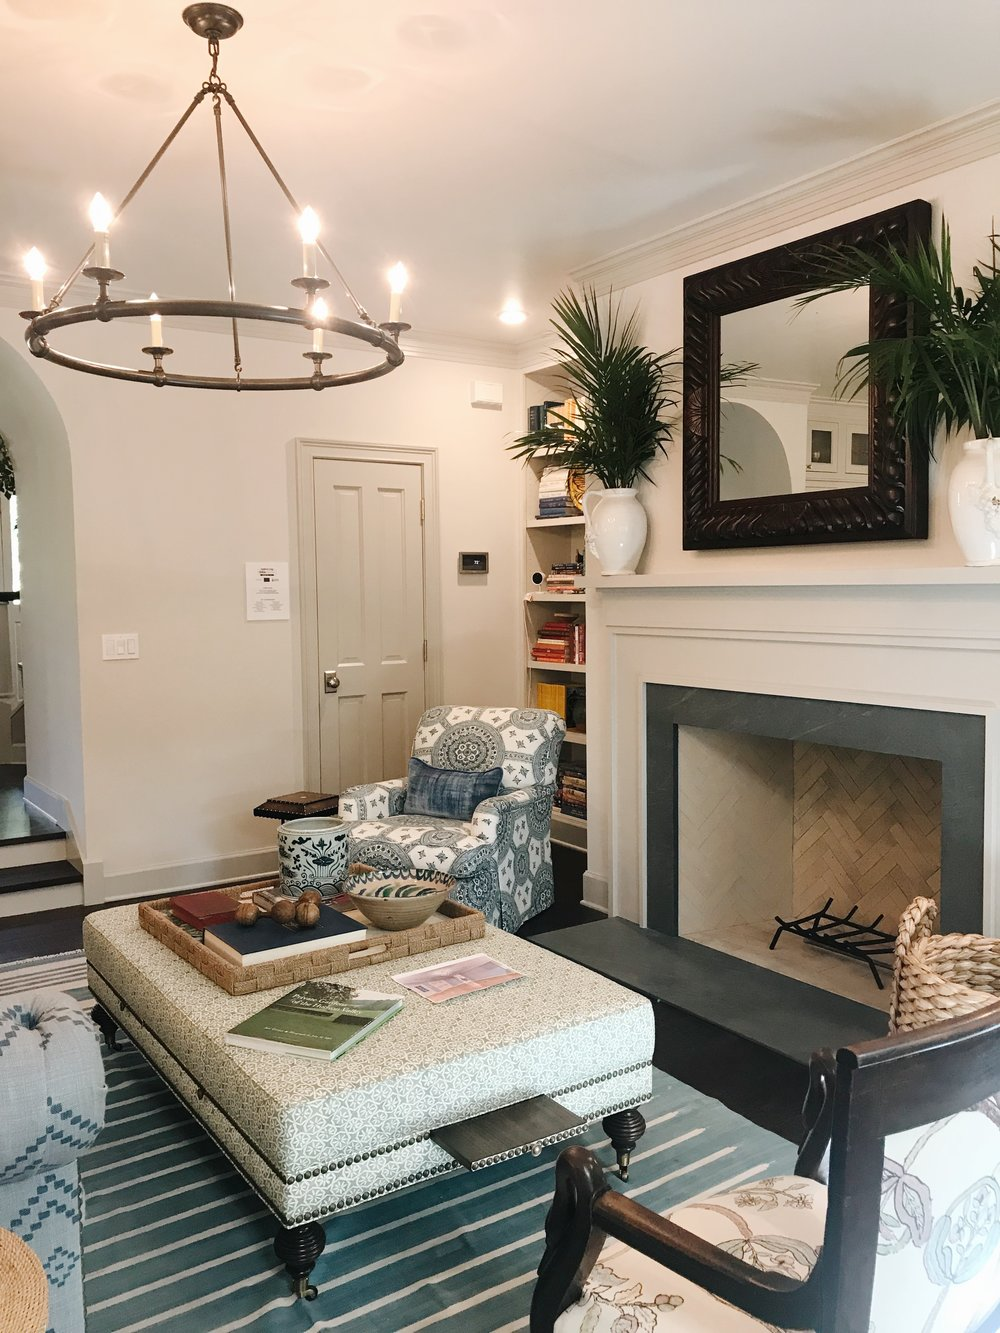 Avery Cox Design Blog: Southern Living 2018 Austin Idea House by Meredith Ellis, Living Room